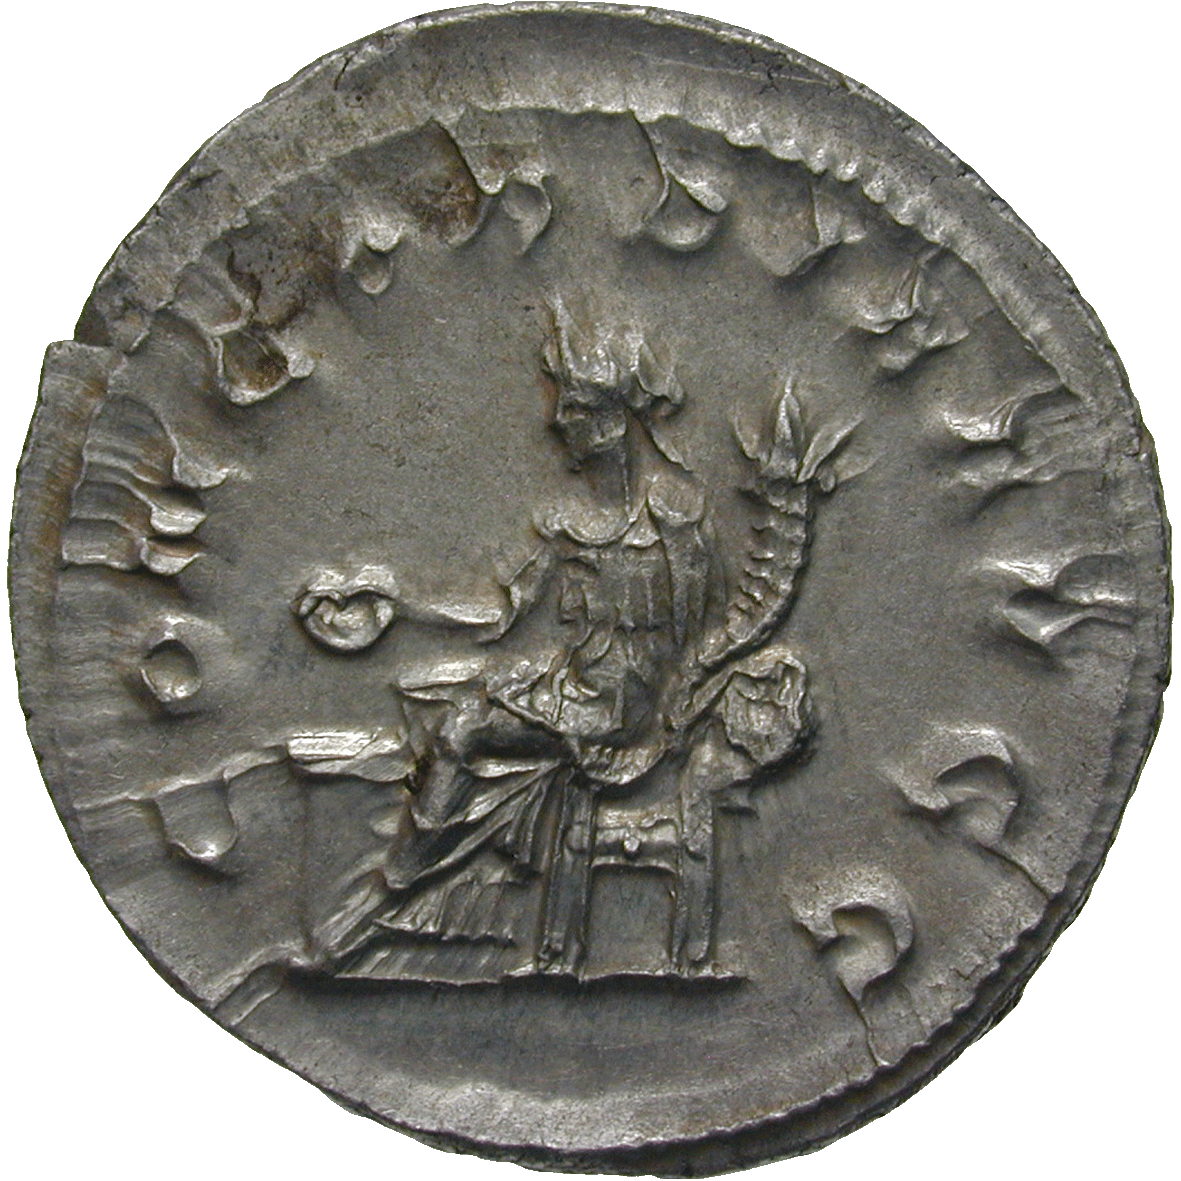 Roman Empire, Philip the Arab for Otacilia Severa, Denarius (reverse)